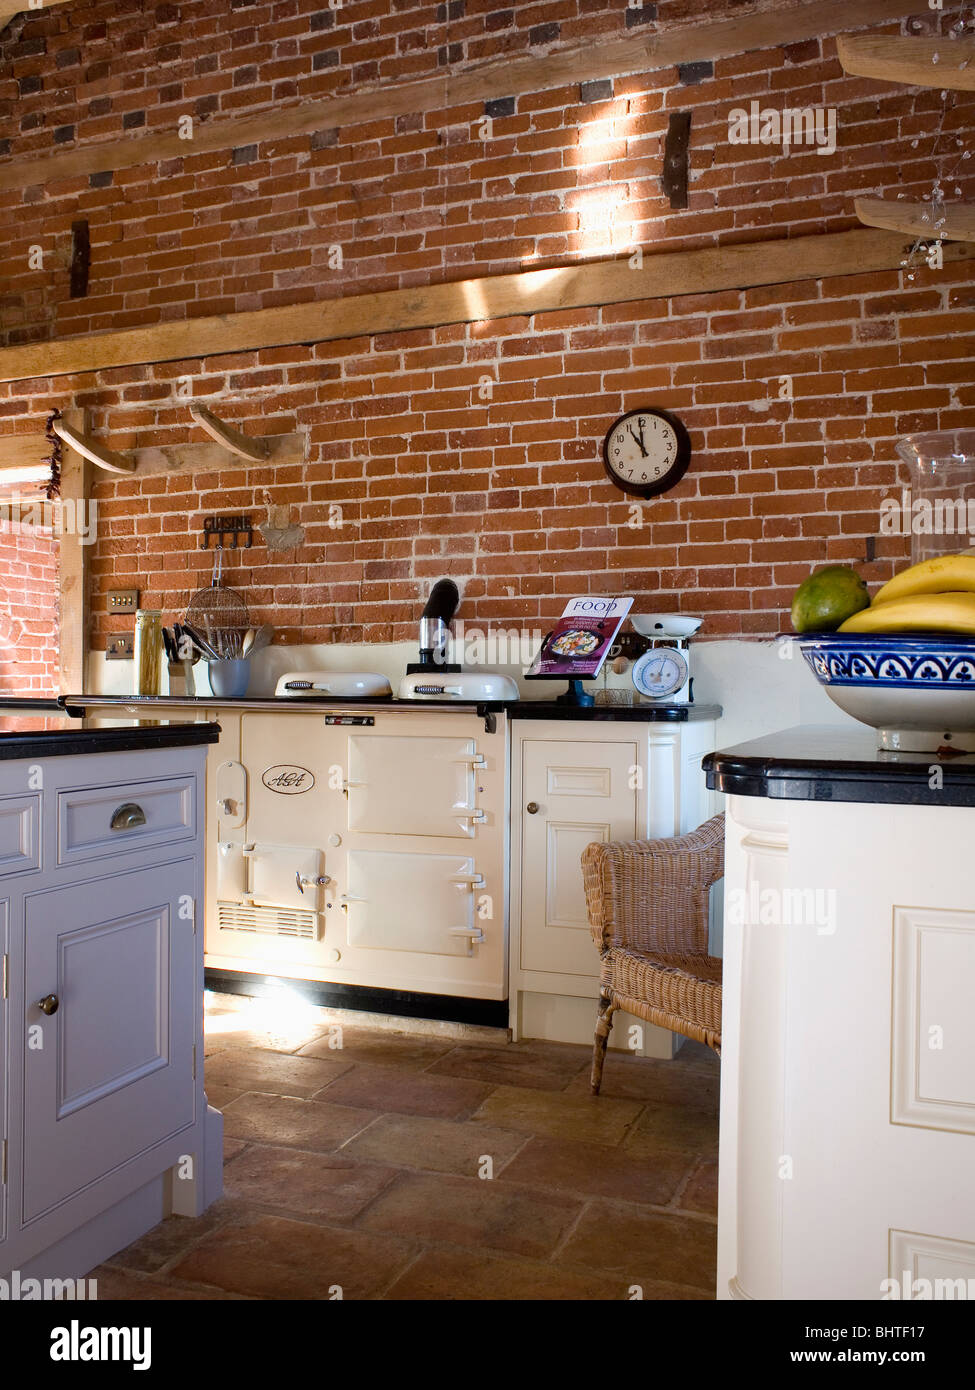 Brick Kitchen Design500400 Exposed Brick Kitchen Exposed Brick Kitchen Wall